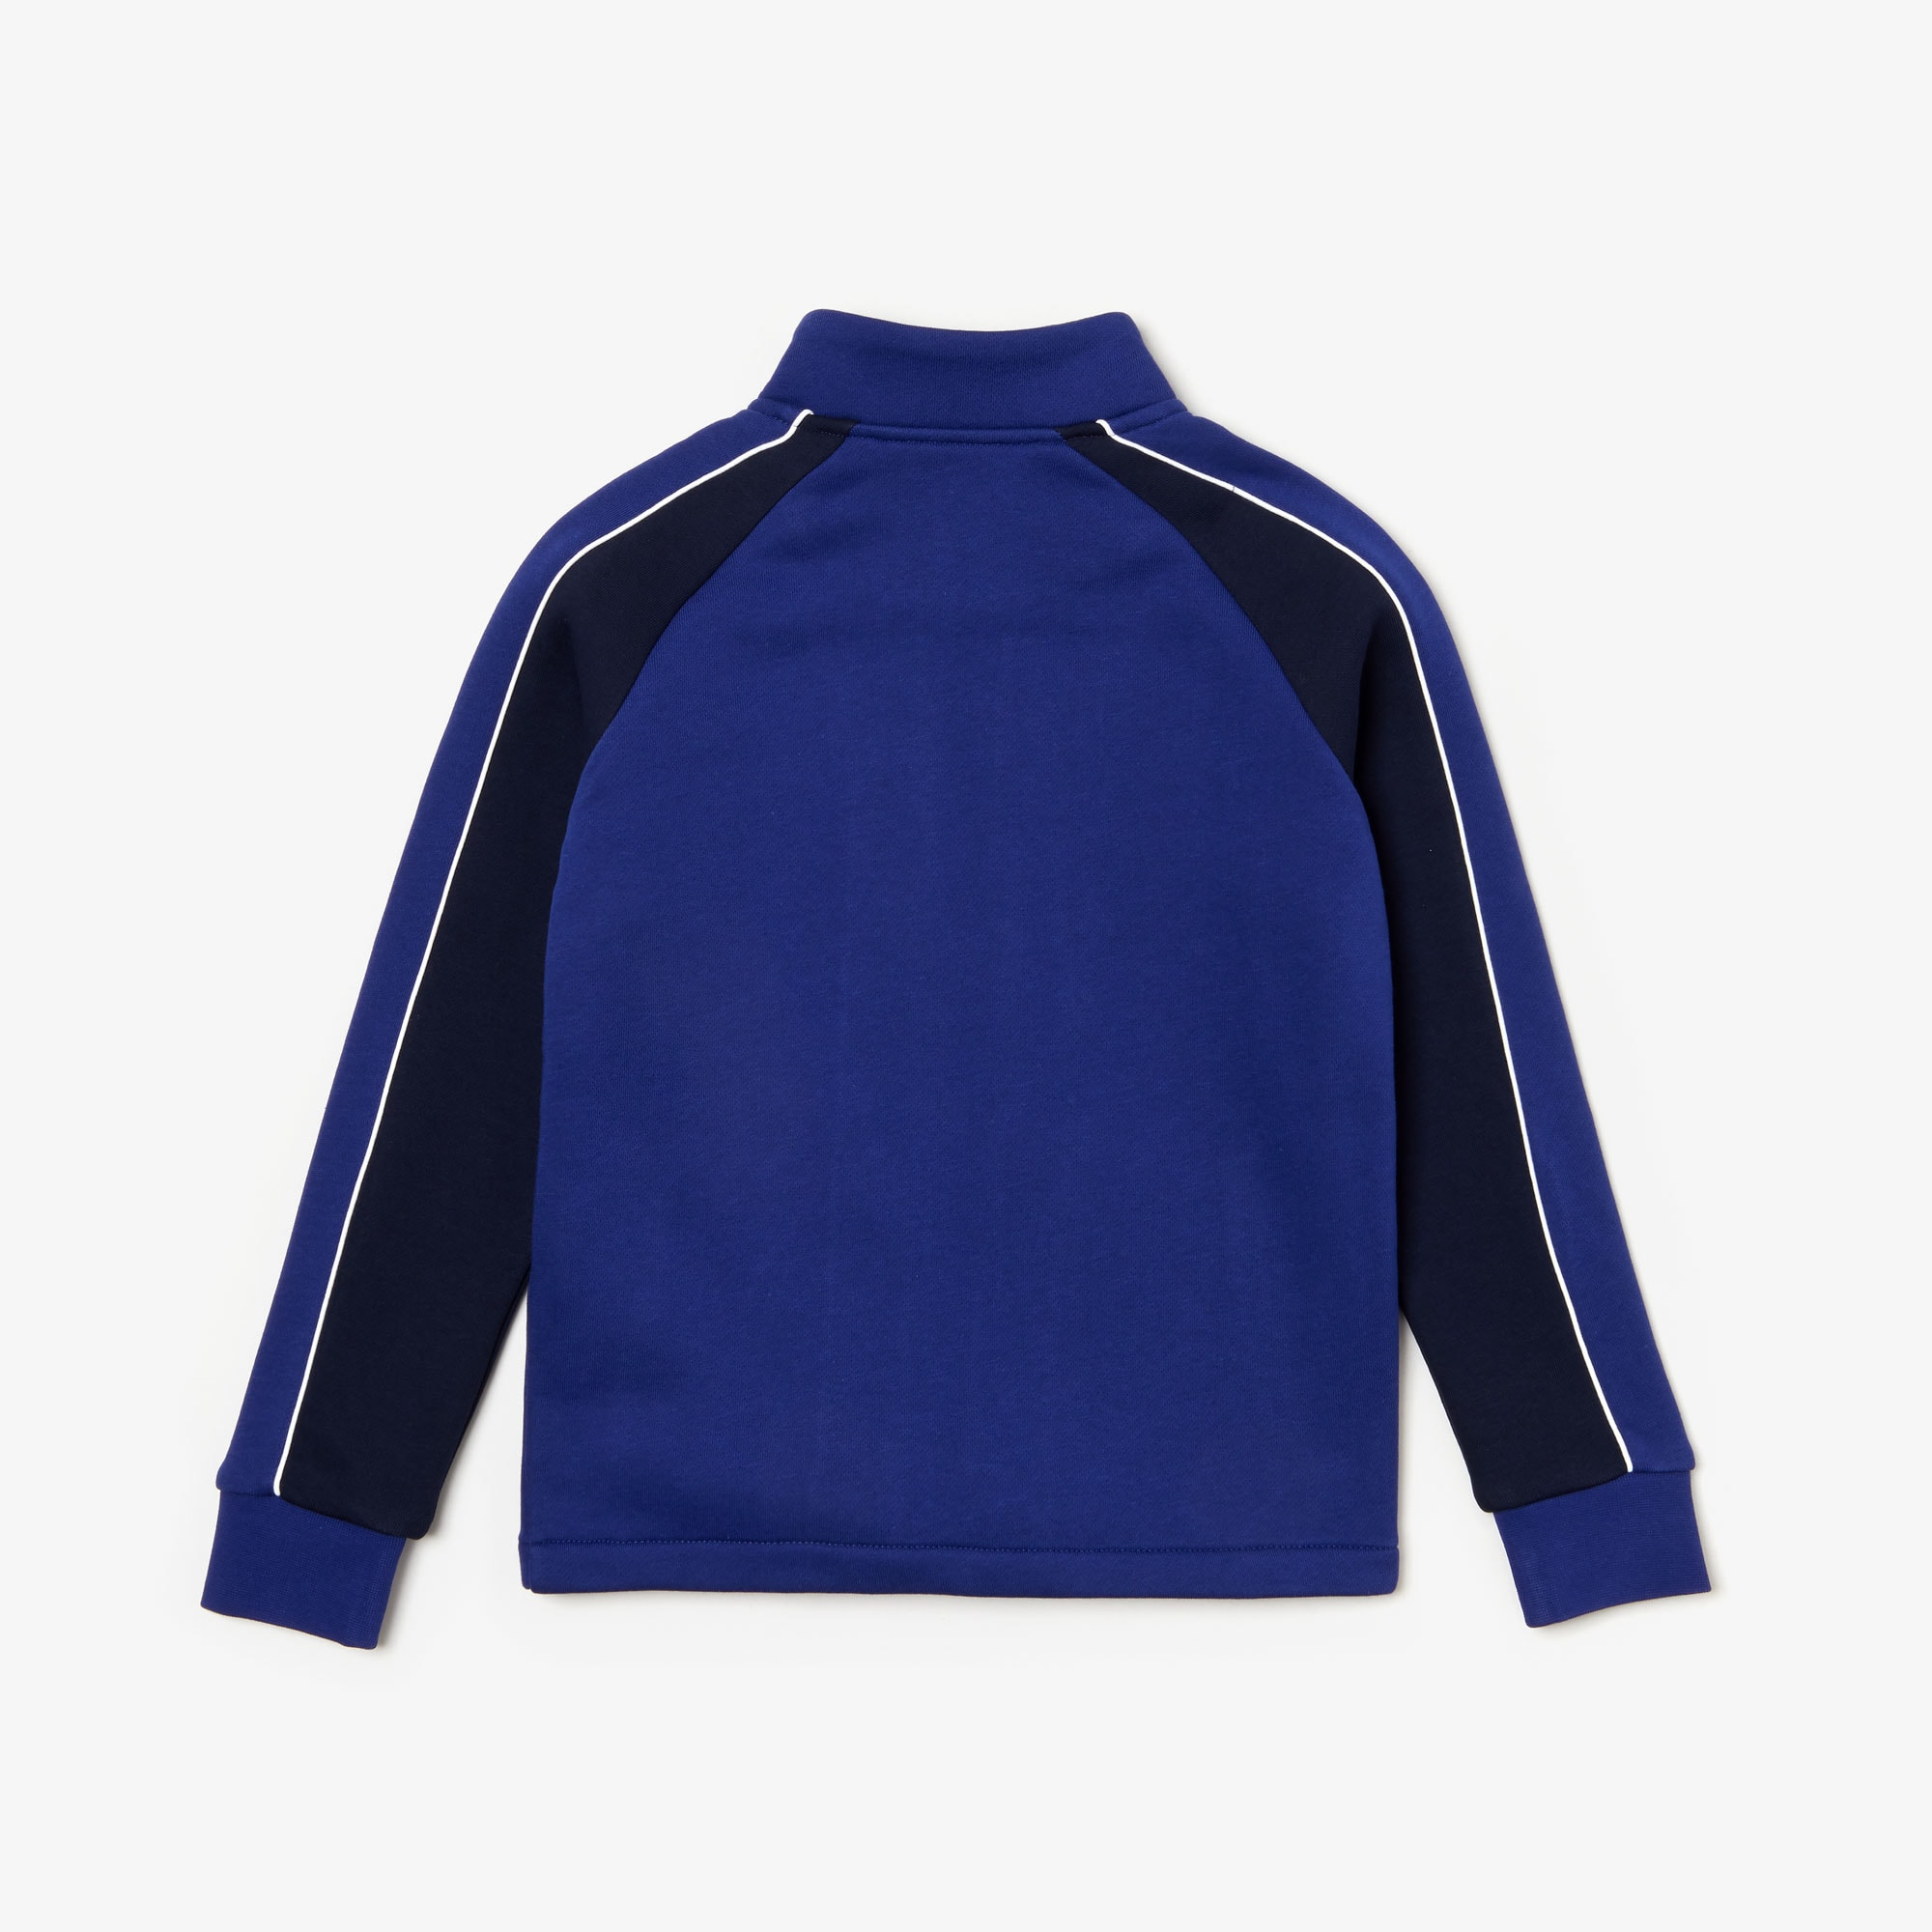 Boys' Lacoste SPORT Bicolour Fleece Zip Sweatshirt